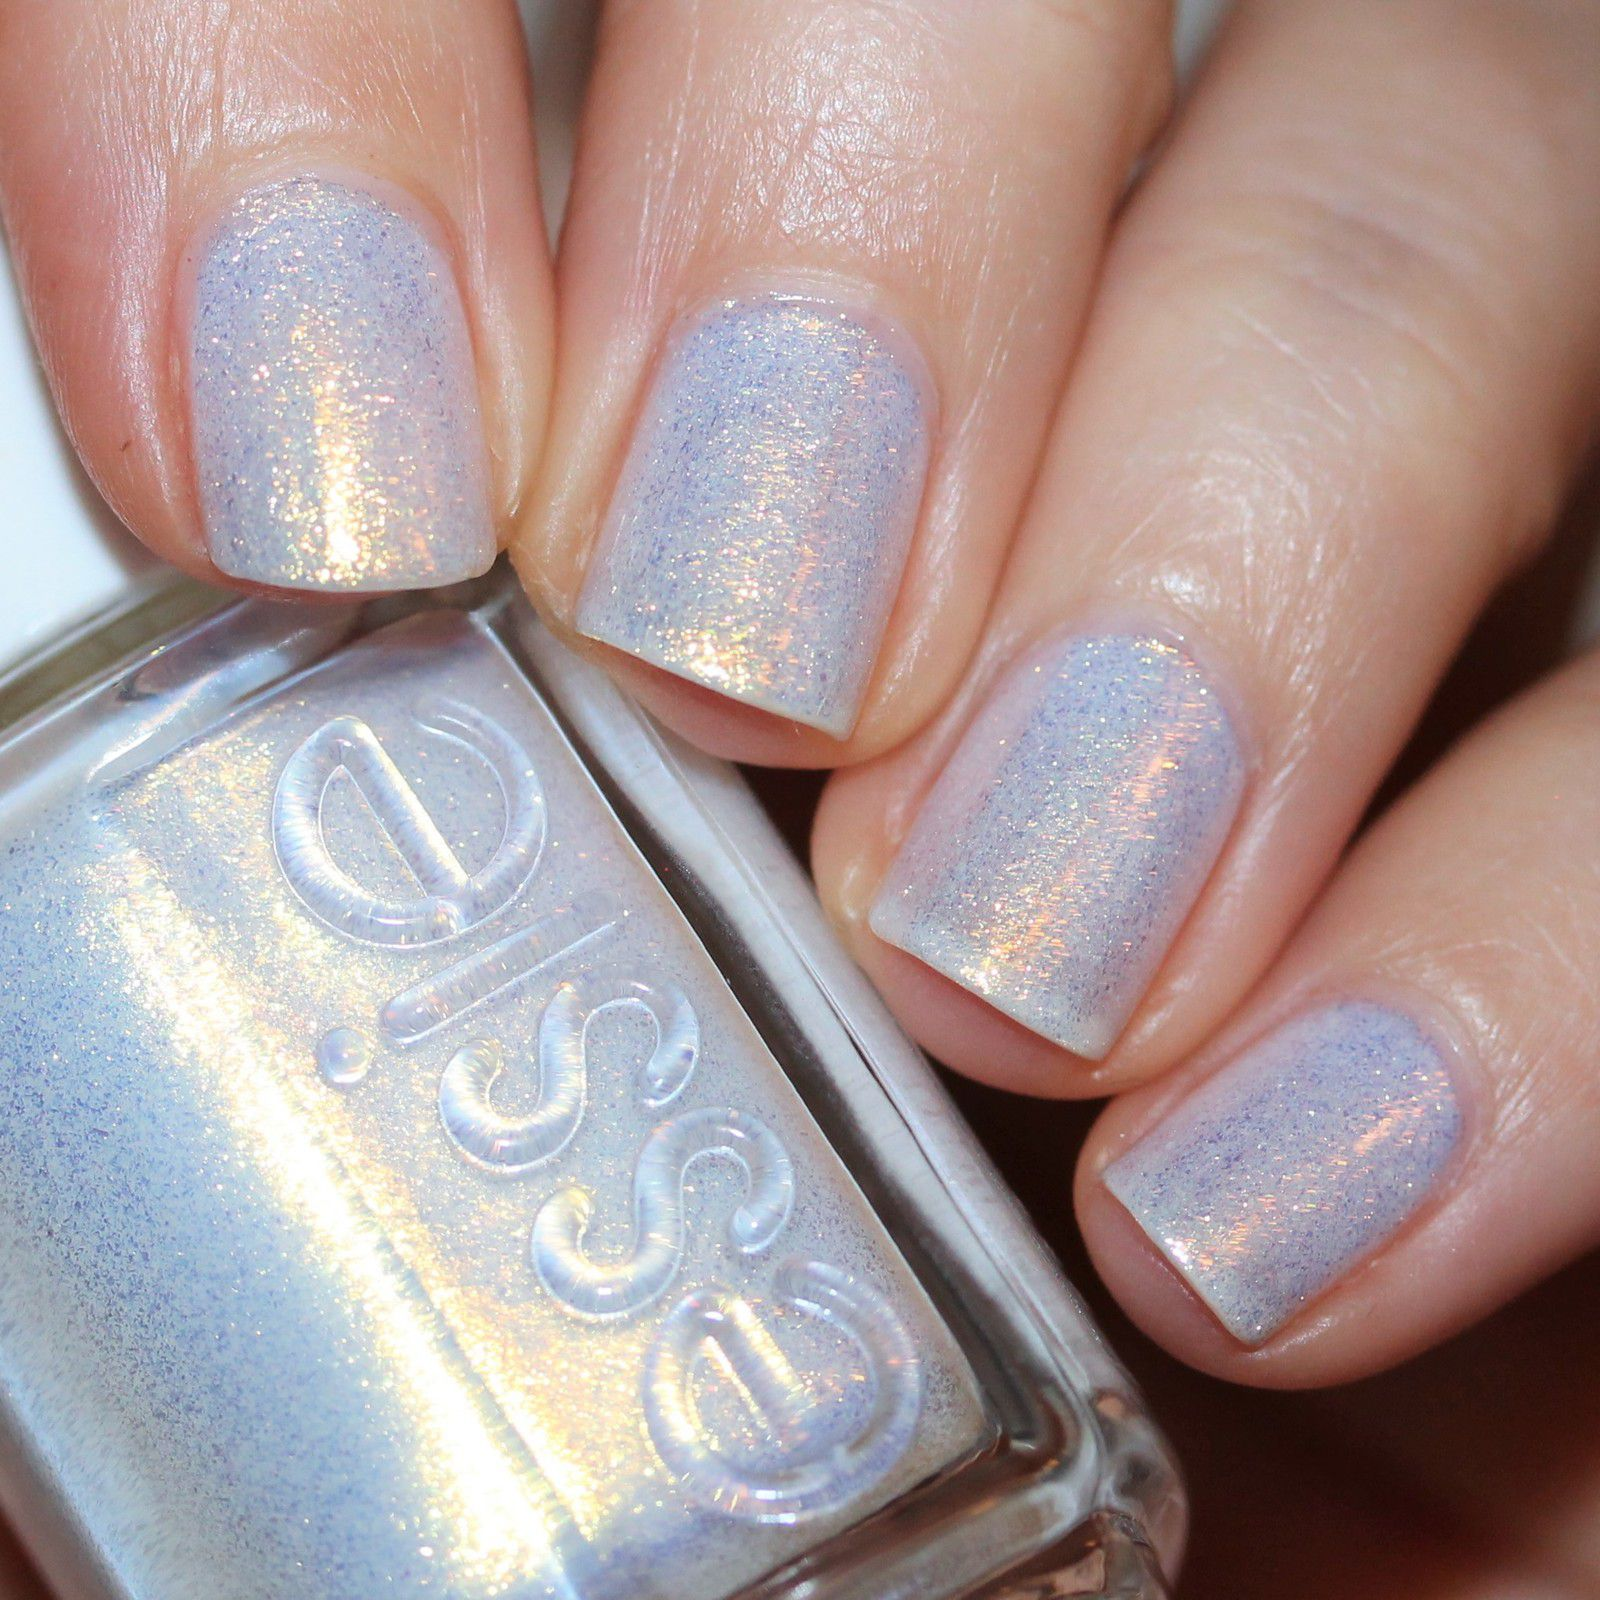 Essie Twinkle in Time